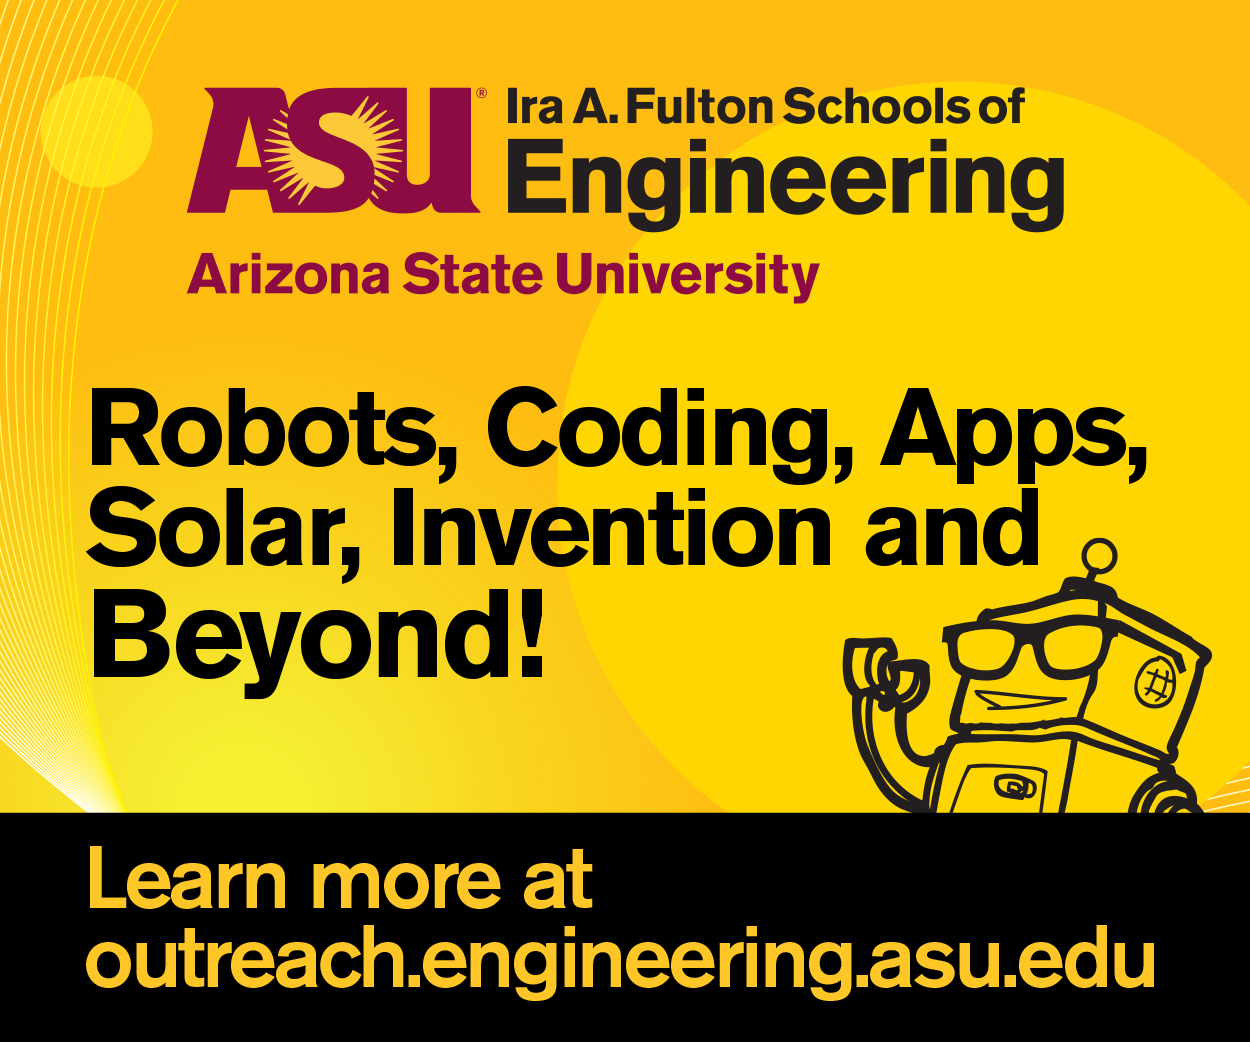 ASU - Ira A. Fulton School of Engineering